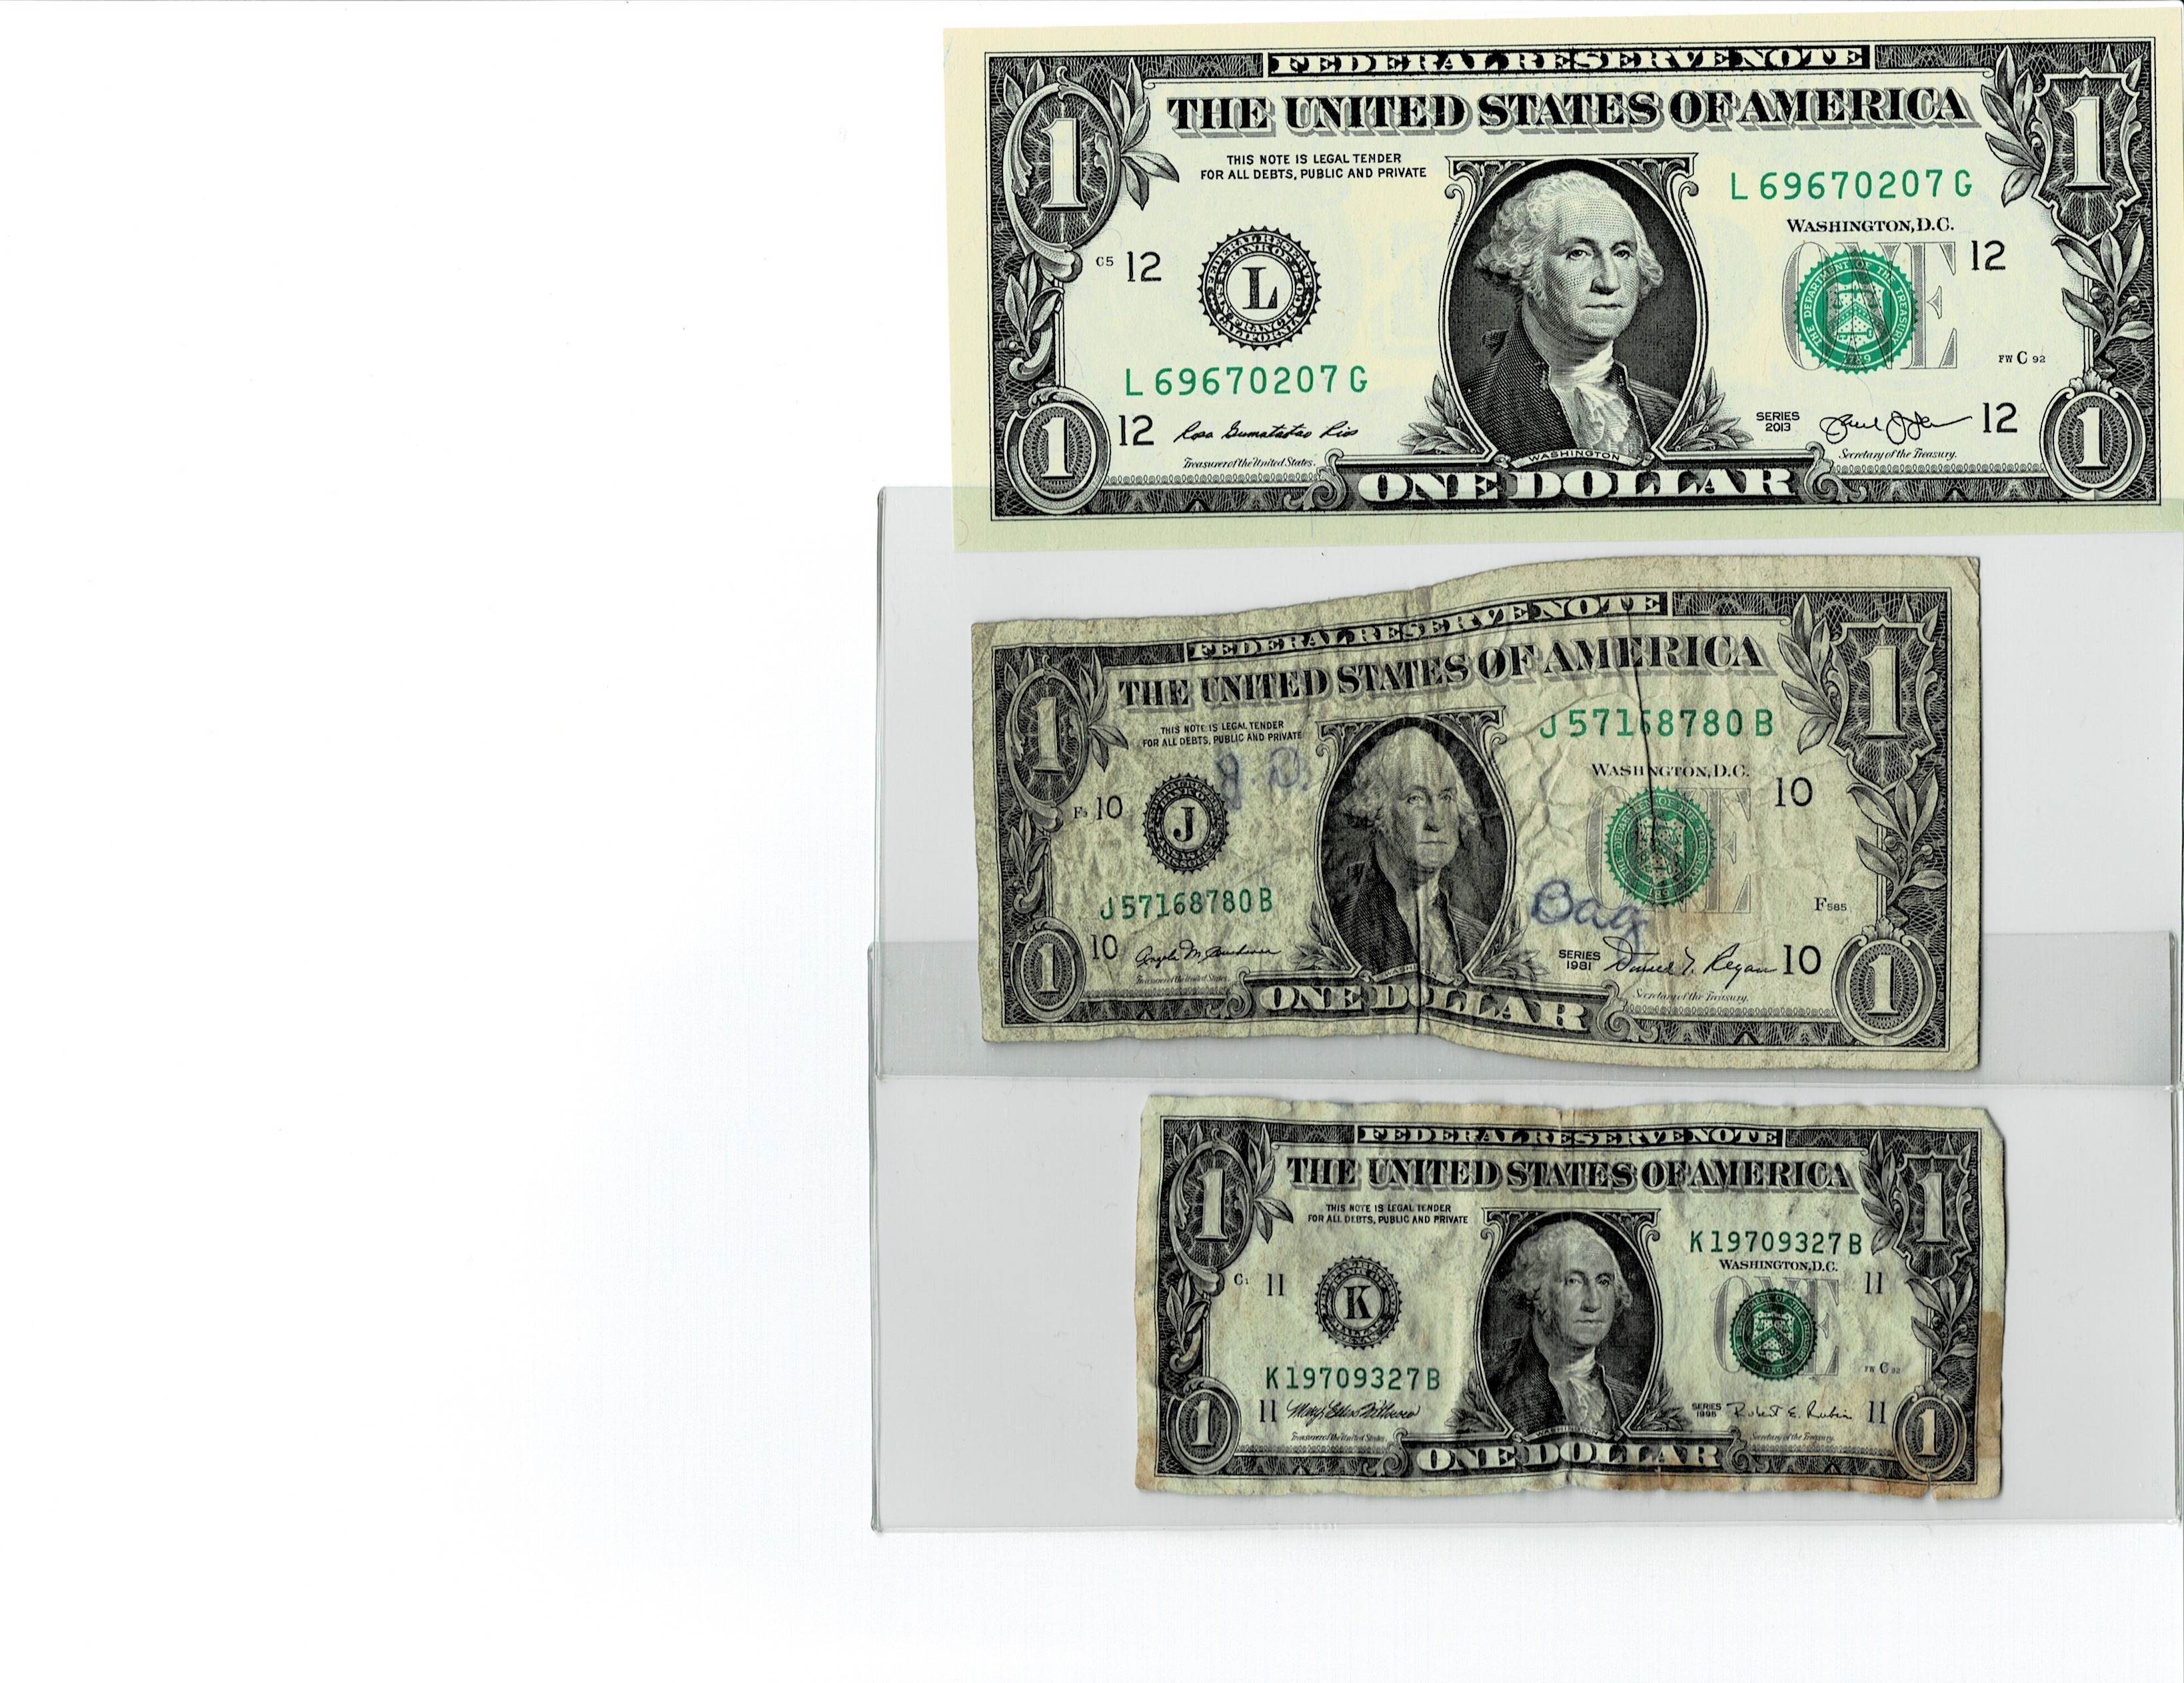 Click image for larger version - Name: dollar.jpg, Views: 57, Size: 1.22 MB